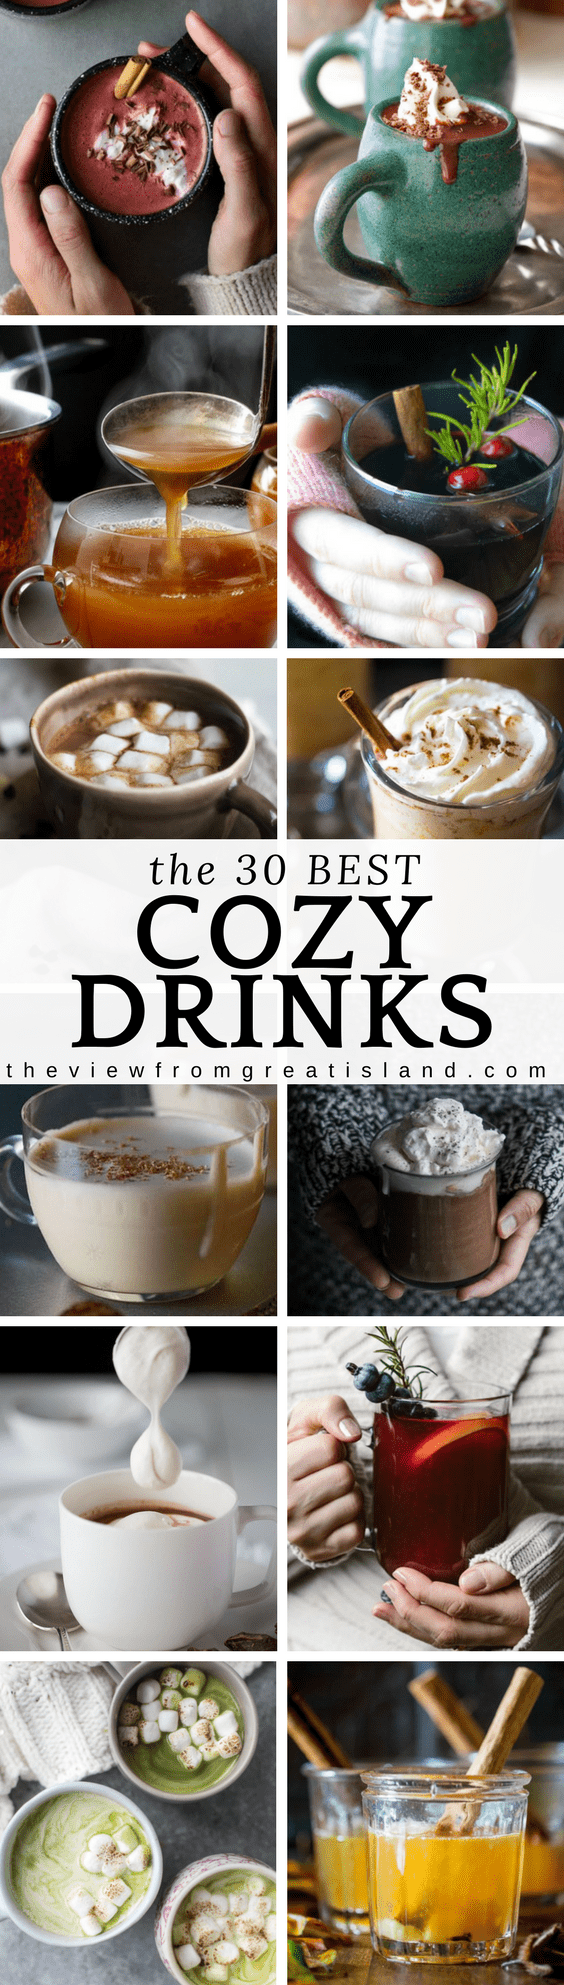 What to Sip Now: Cozy Drinks ~ here are the 30 COZIEST hot beverages perfect for cold winter sipping...everything from hot cocoa to pumpkin steamers! #beverage #hotchocolate #steamers #starbucks #hotcider #mulledcider #mulledwine #redvelvetcocoa #eggnog #hottoddy #hotbutteredrum #matchahotcocoa #drinkablenutella #hotdelcedeleche #pumpkinlatte #spicyhotchocolate #eggnoglatte